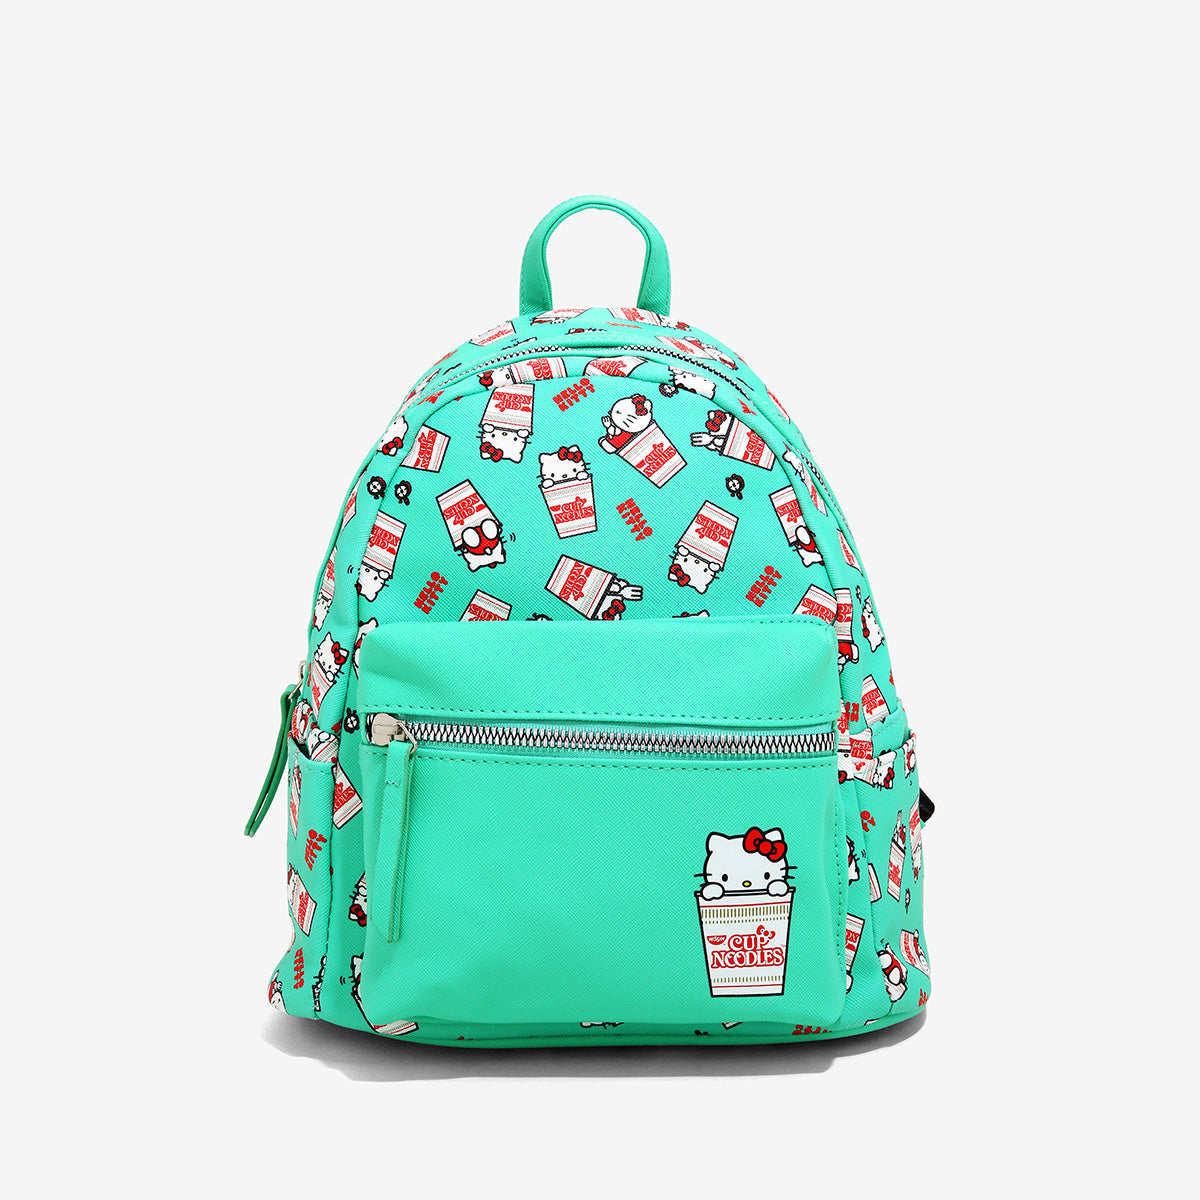 Hello Kitty x Cup Noodles Mini Backpack